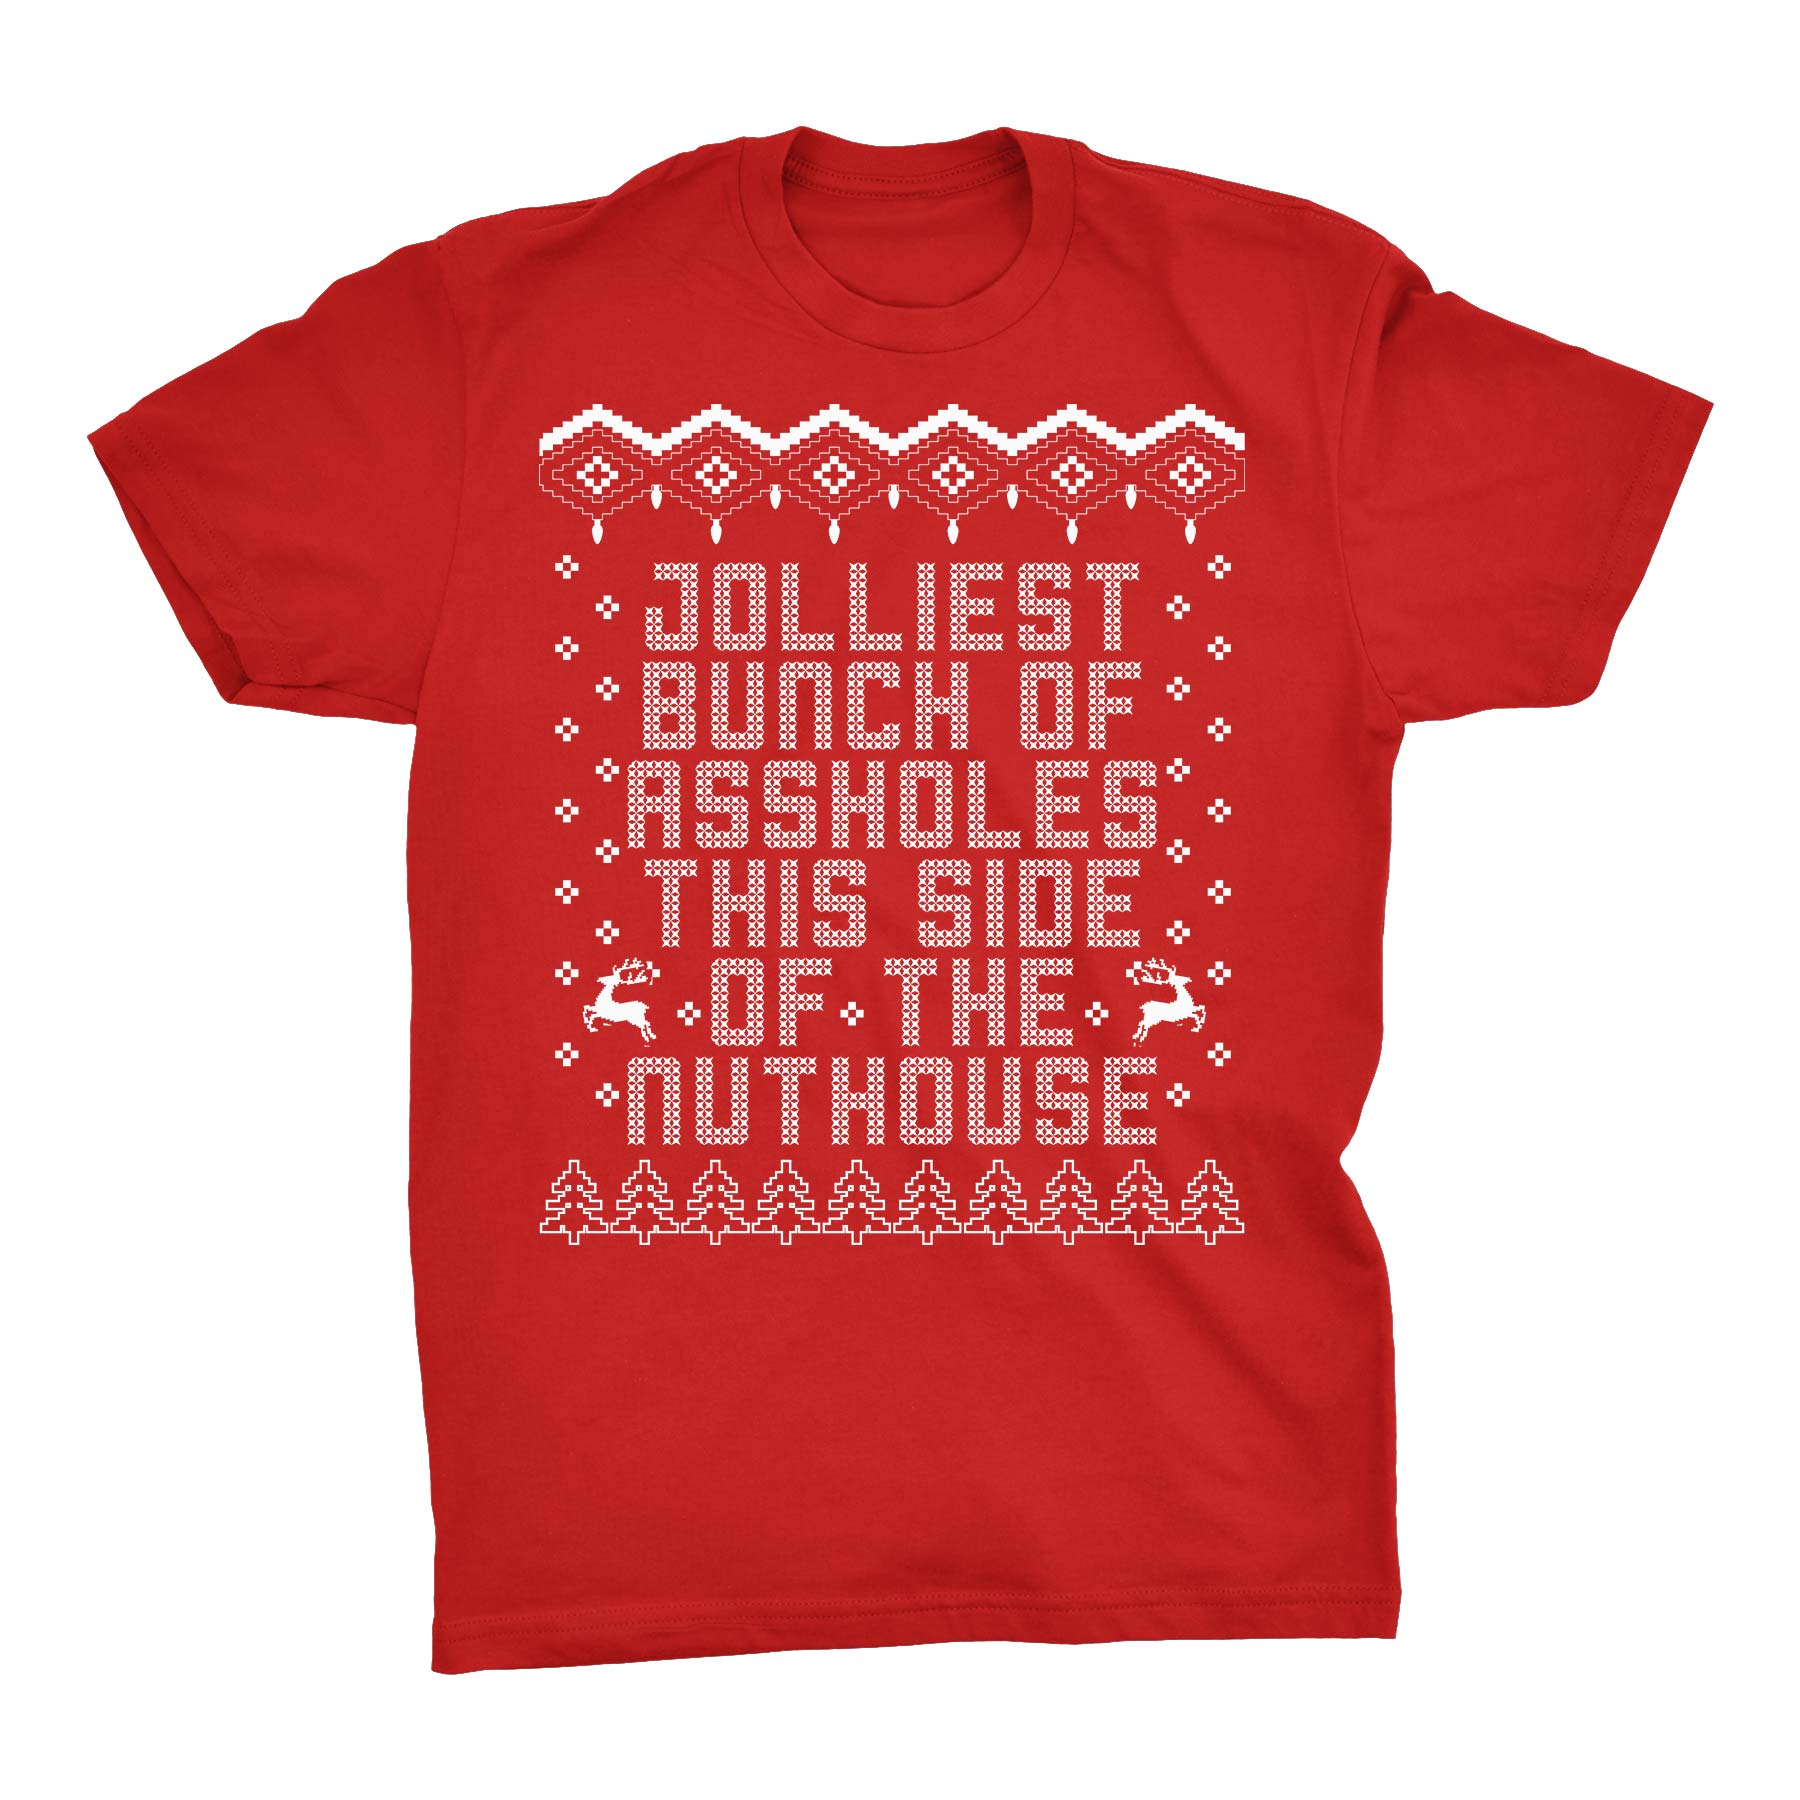 Jolliest Bunch - Christmas T-shirt